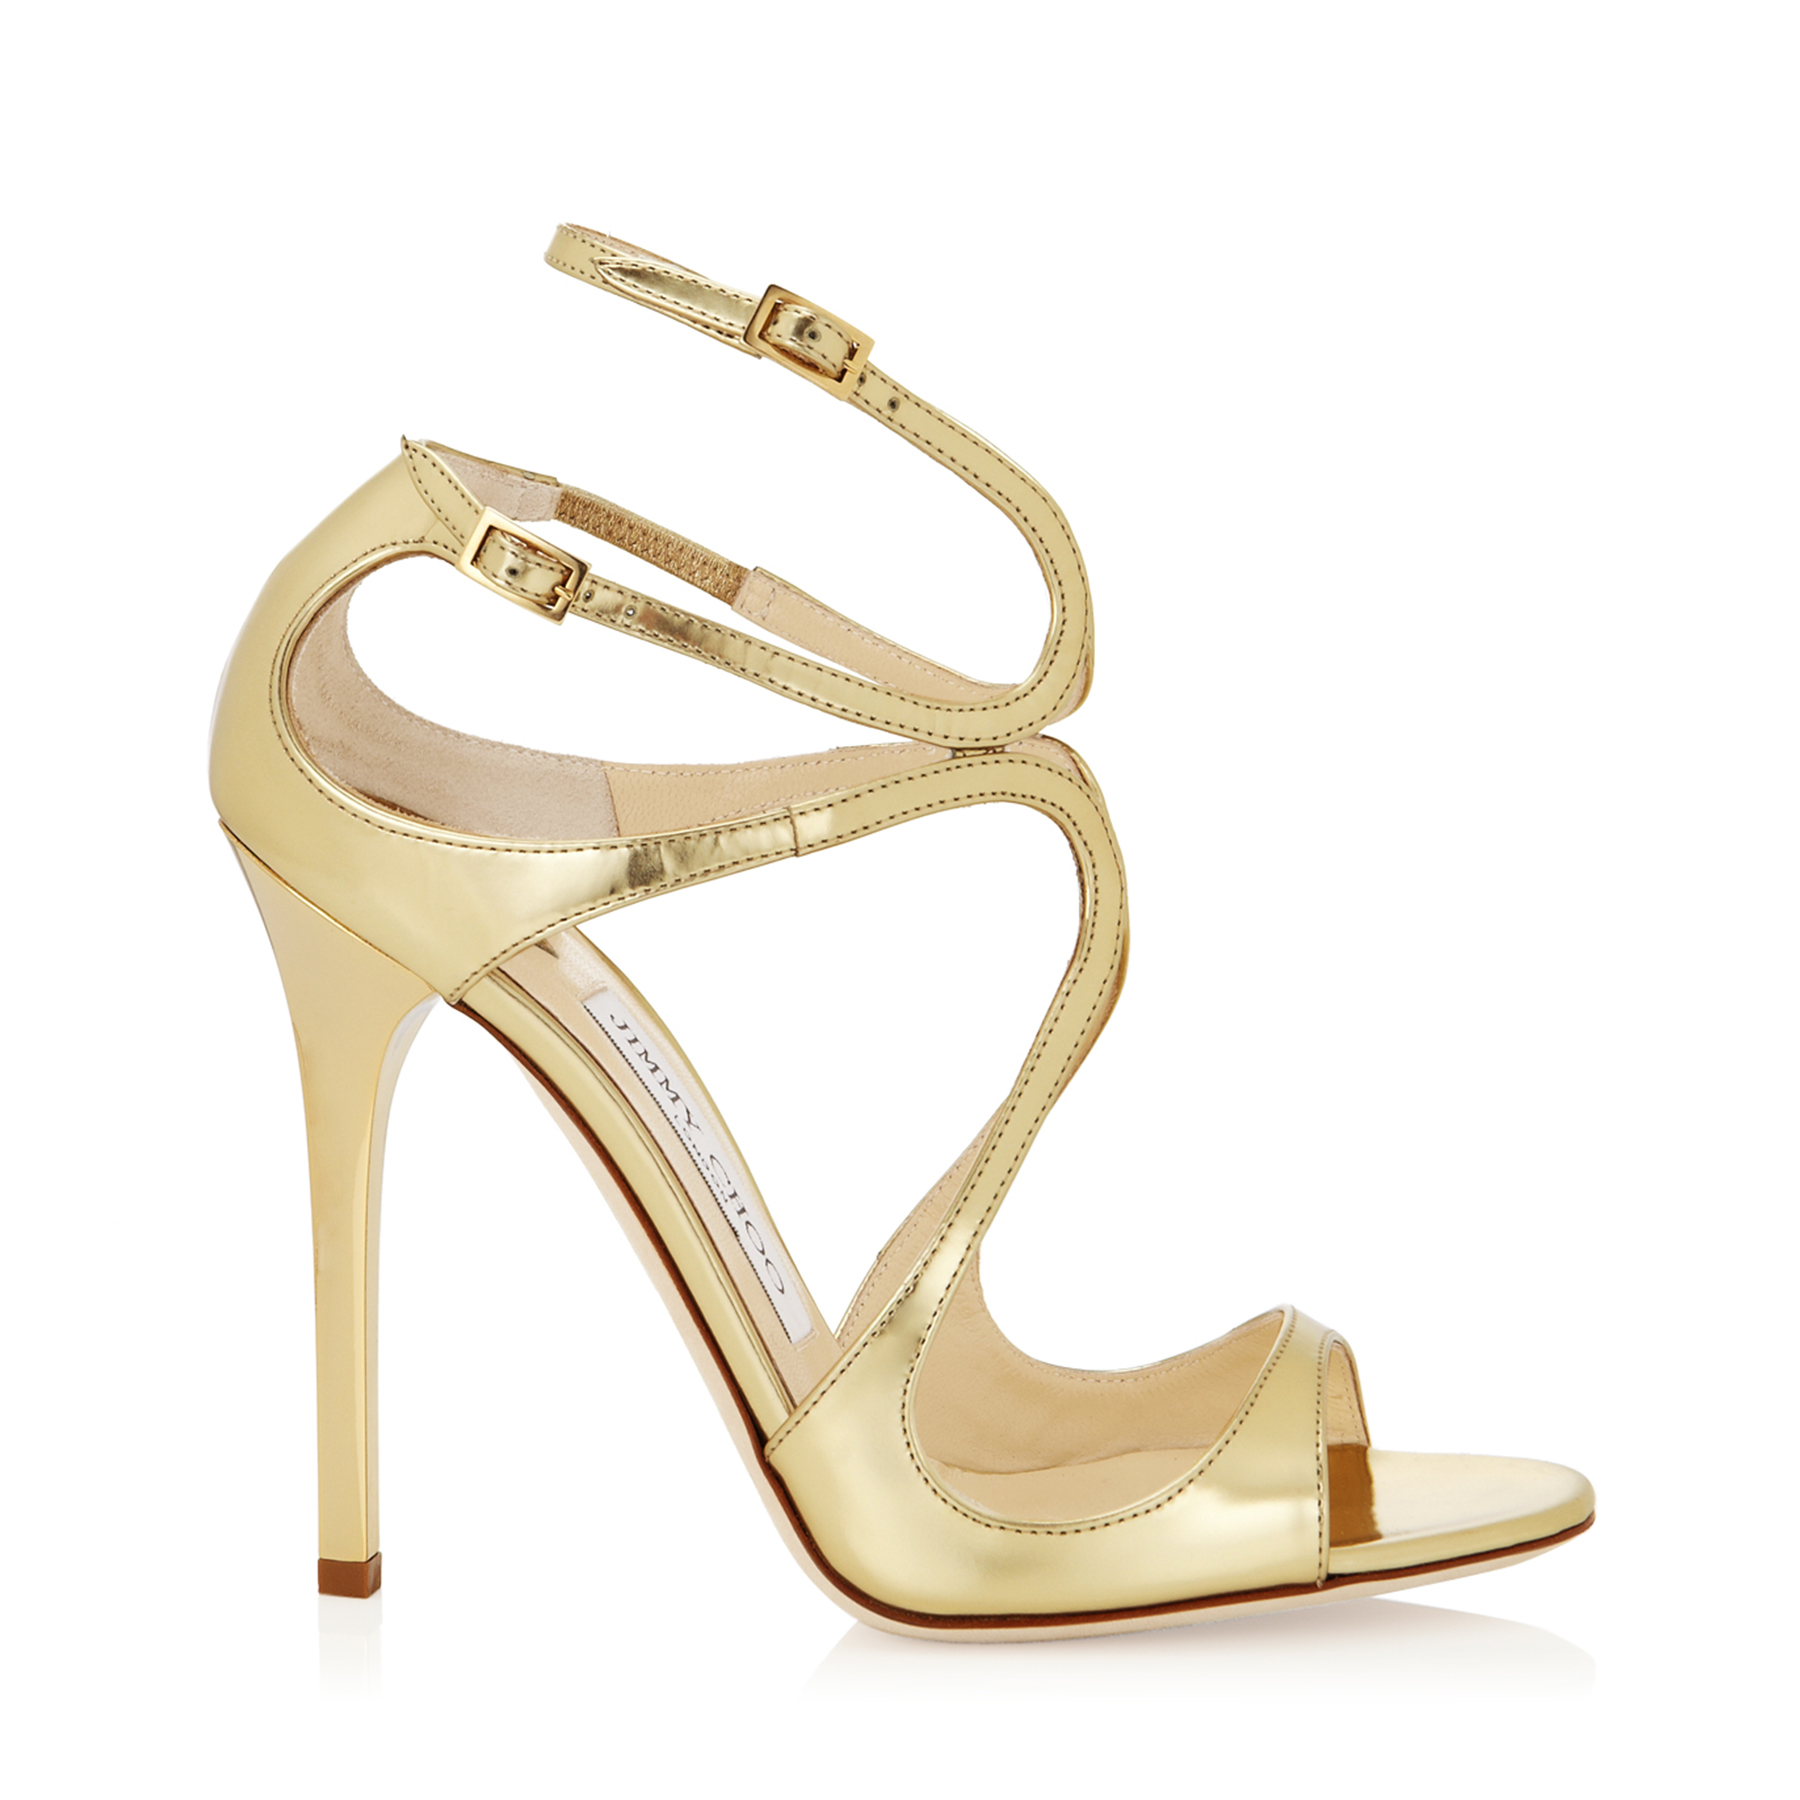 LANCE Gold Mirror Leather Sandals by Jimmy Choo